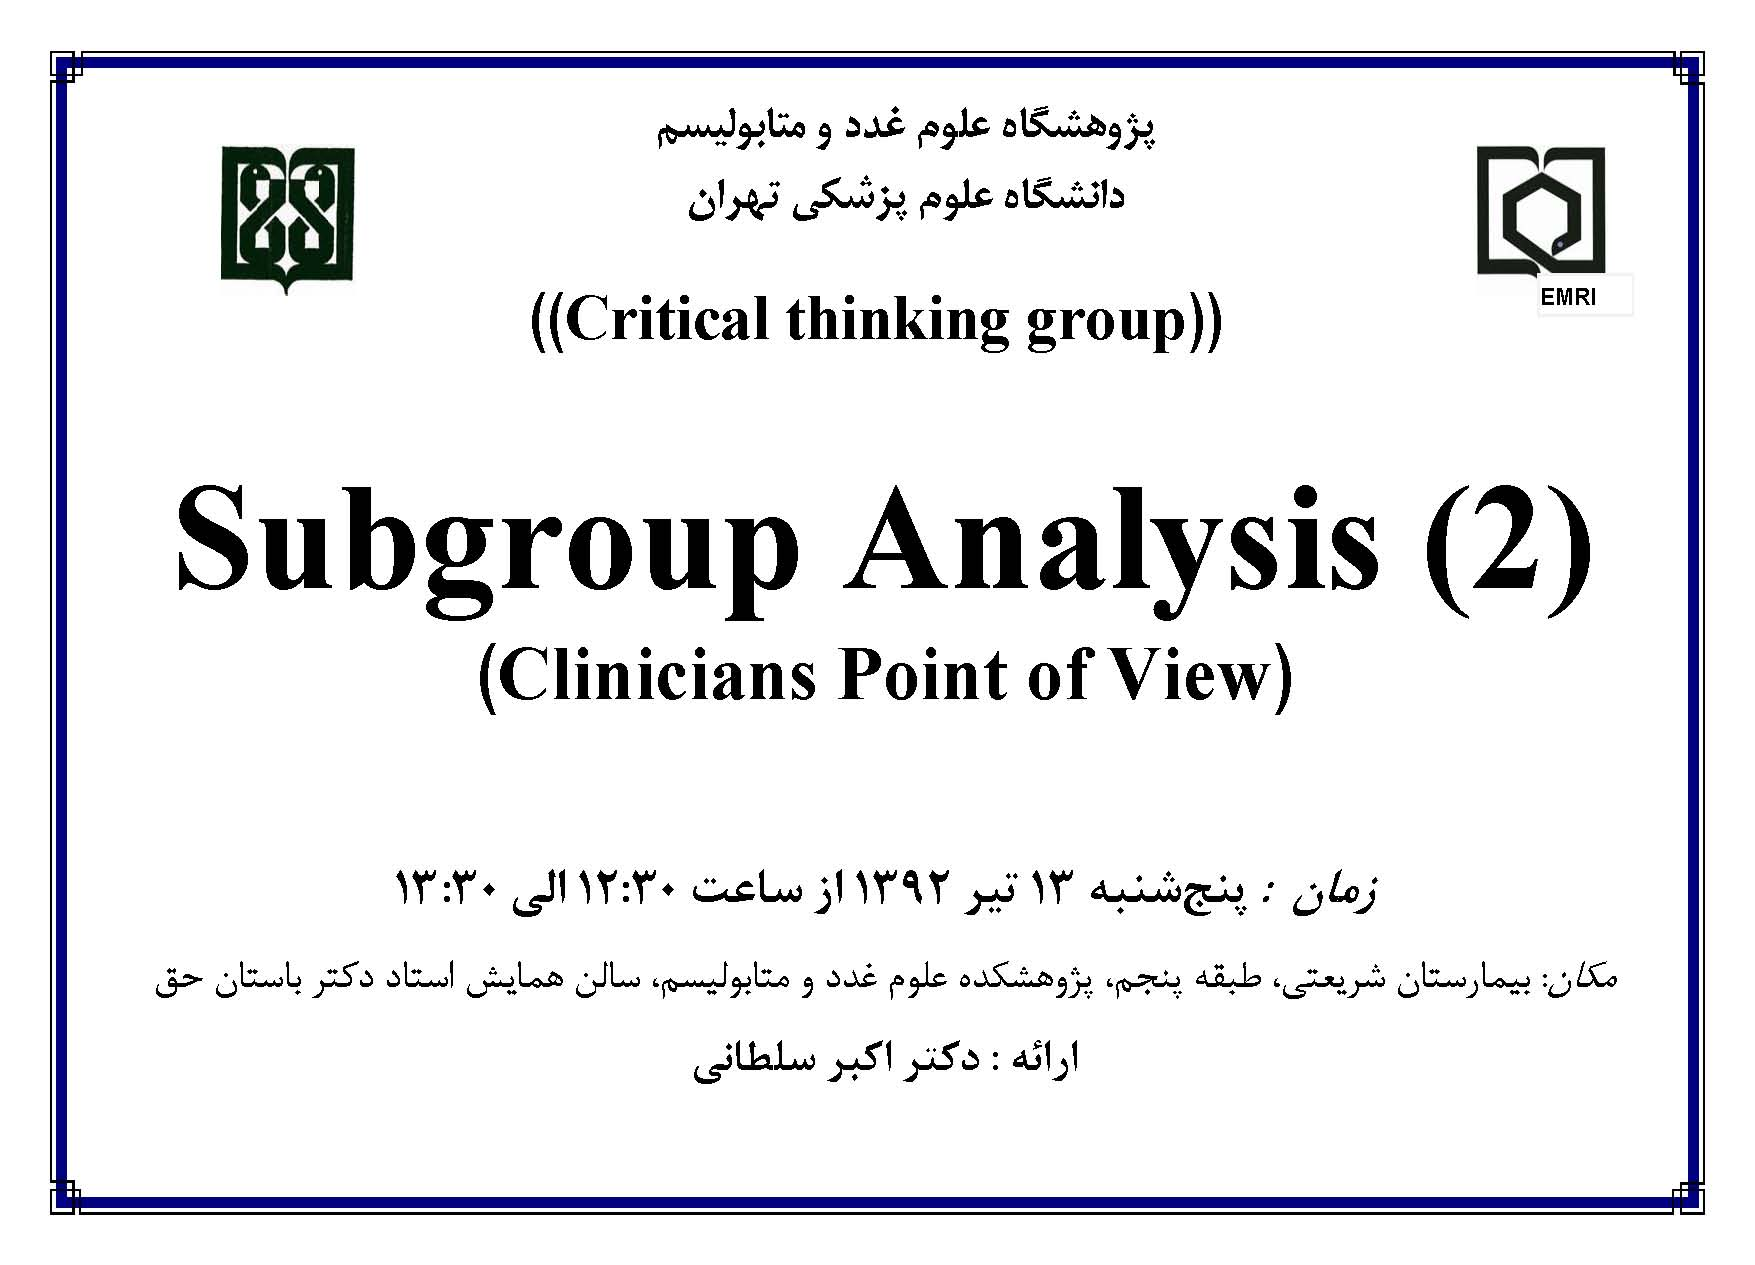 سخنرانی علمی هفتگی: Subgroup Analysis (2); Clinicians Point of View